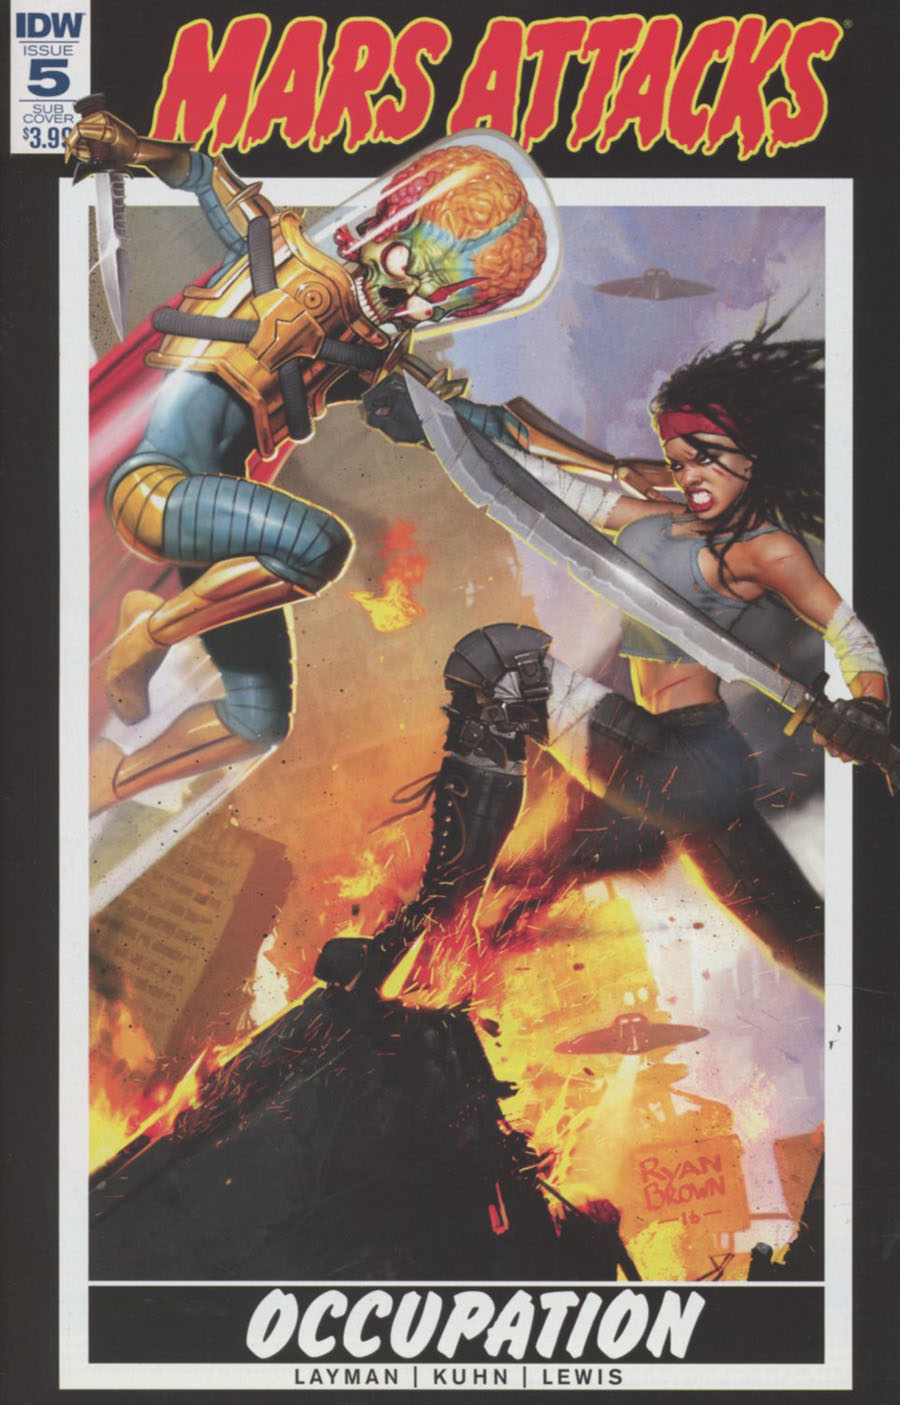 Mars Attacks Occupation #5 Cover B Variant Ryan Brown Throwback Card Subscription Cover